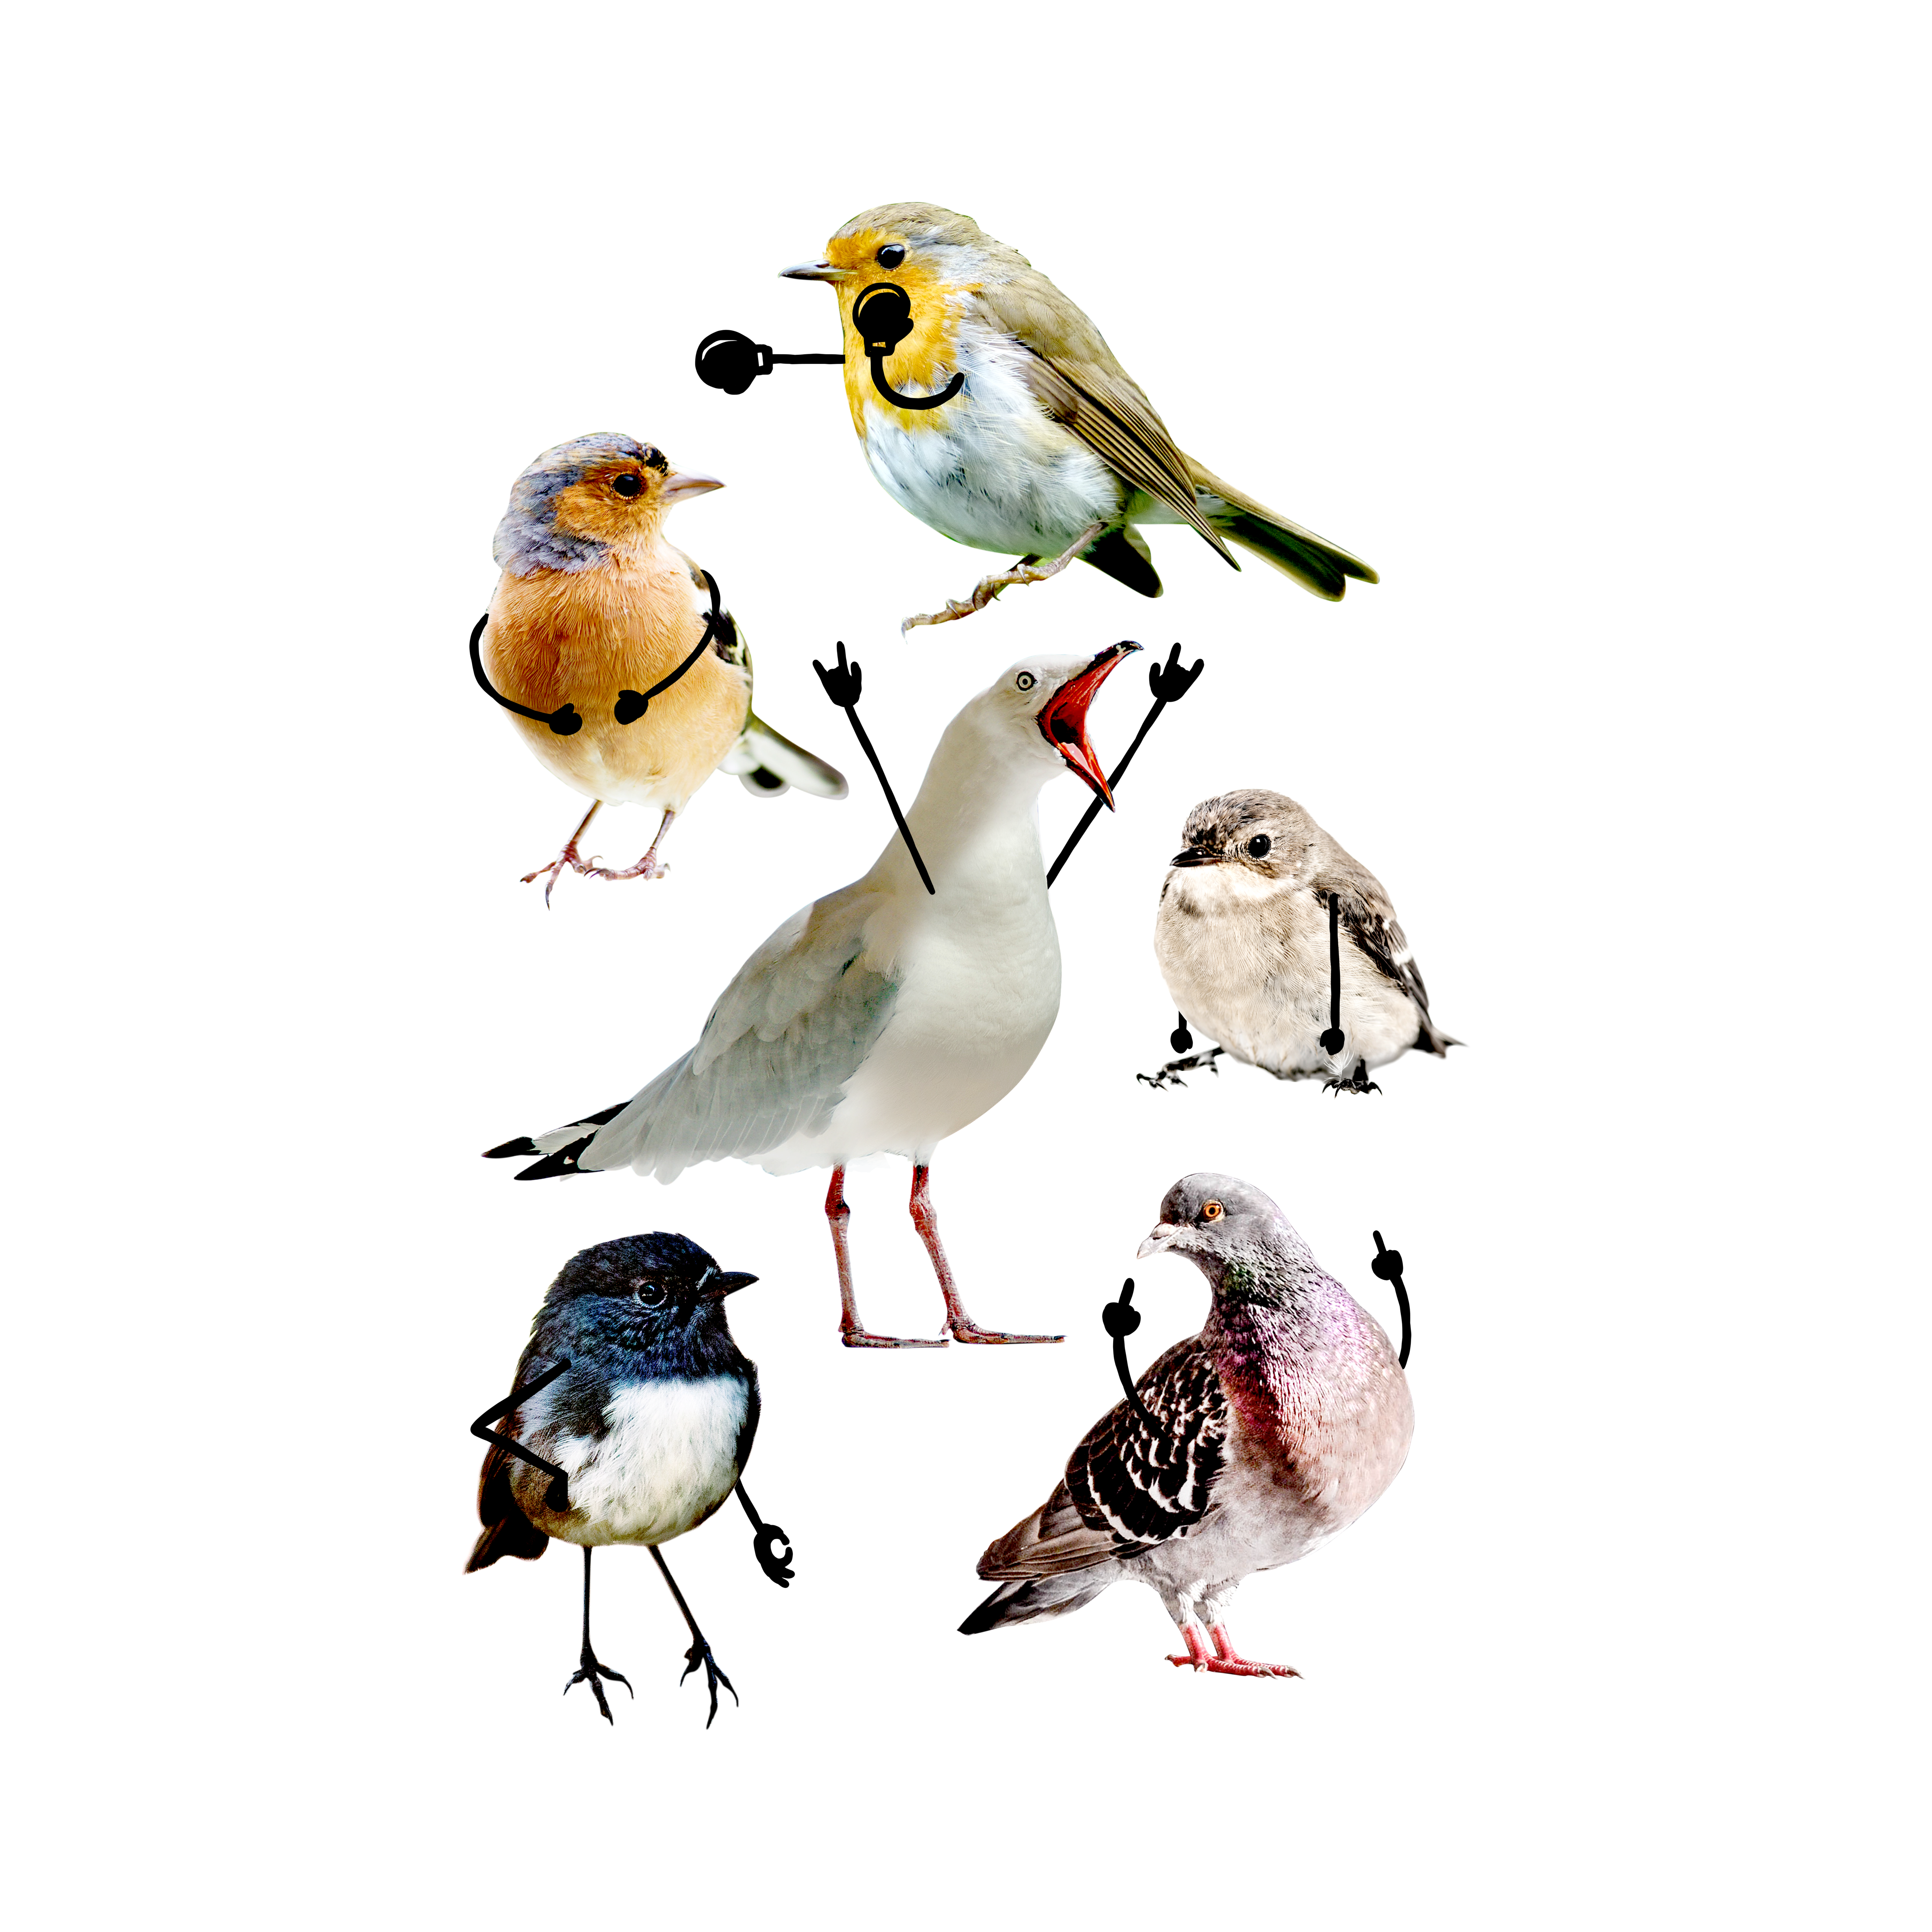 Most popular designs of April - Birds With Arms